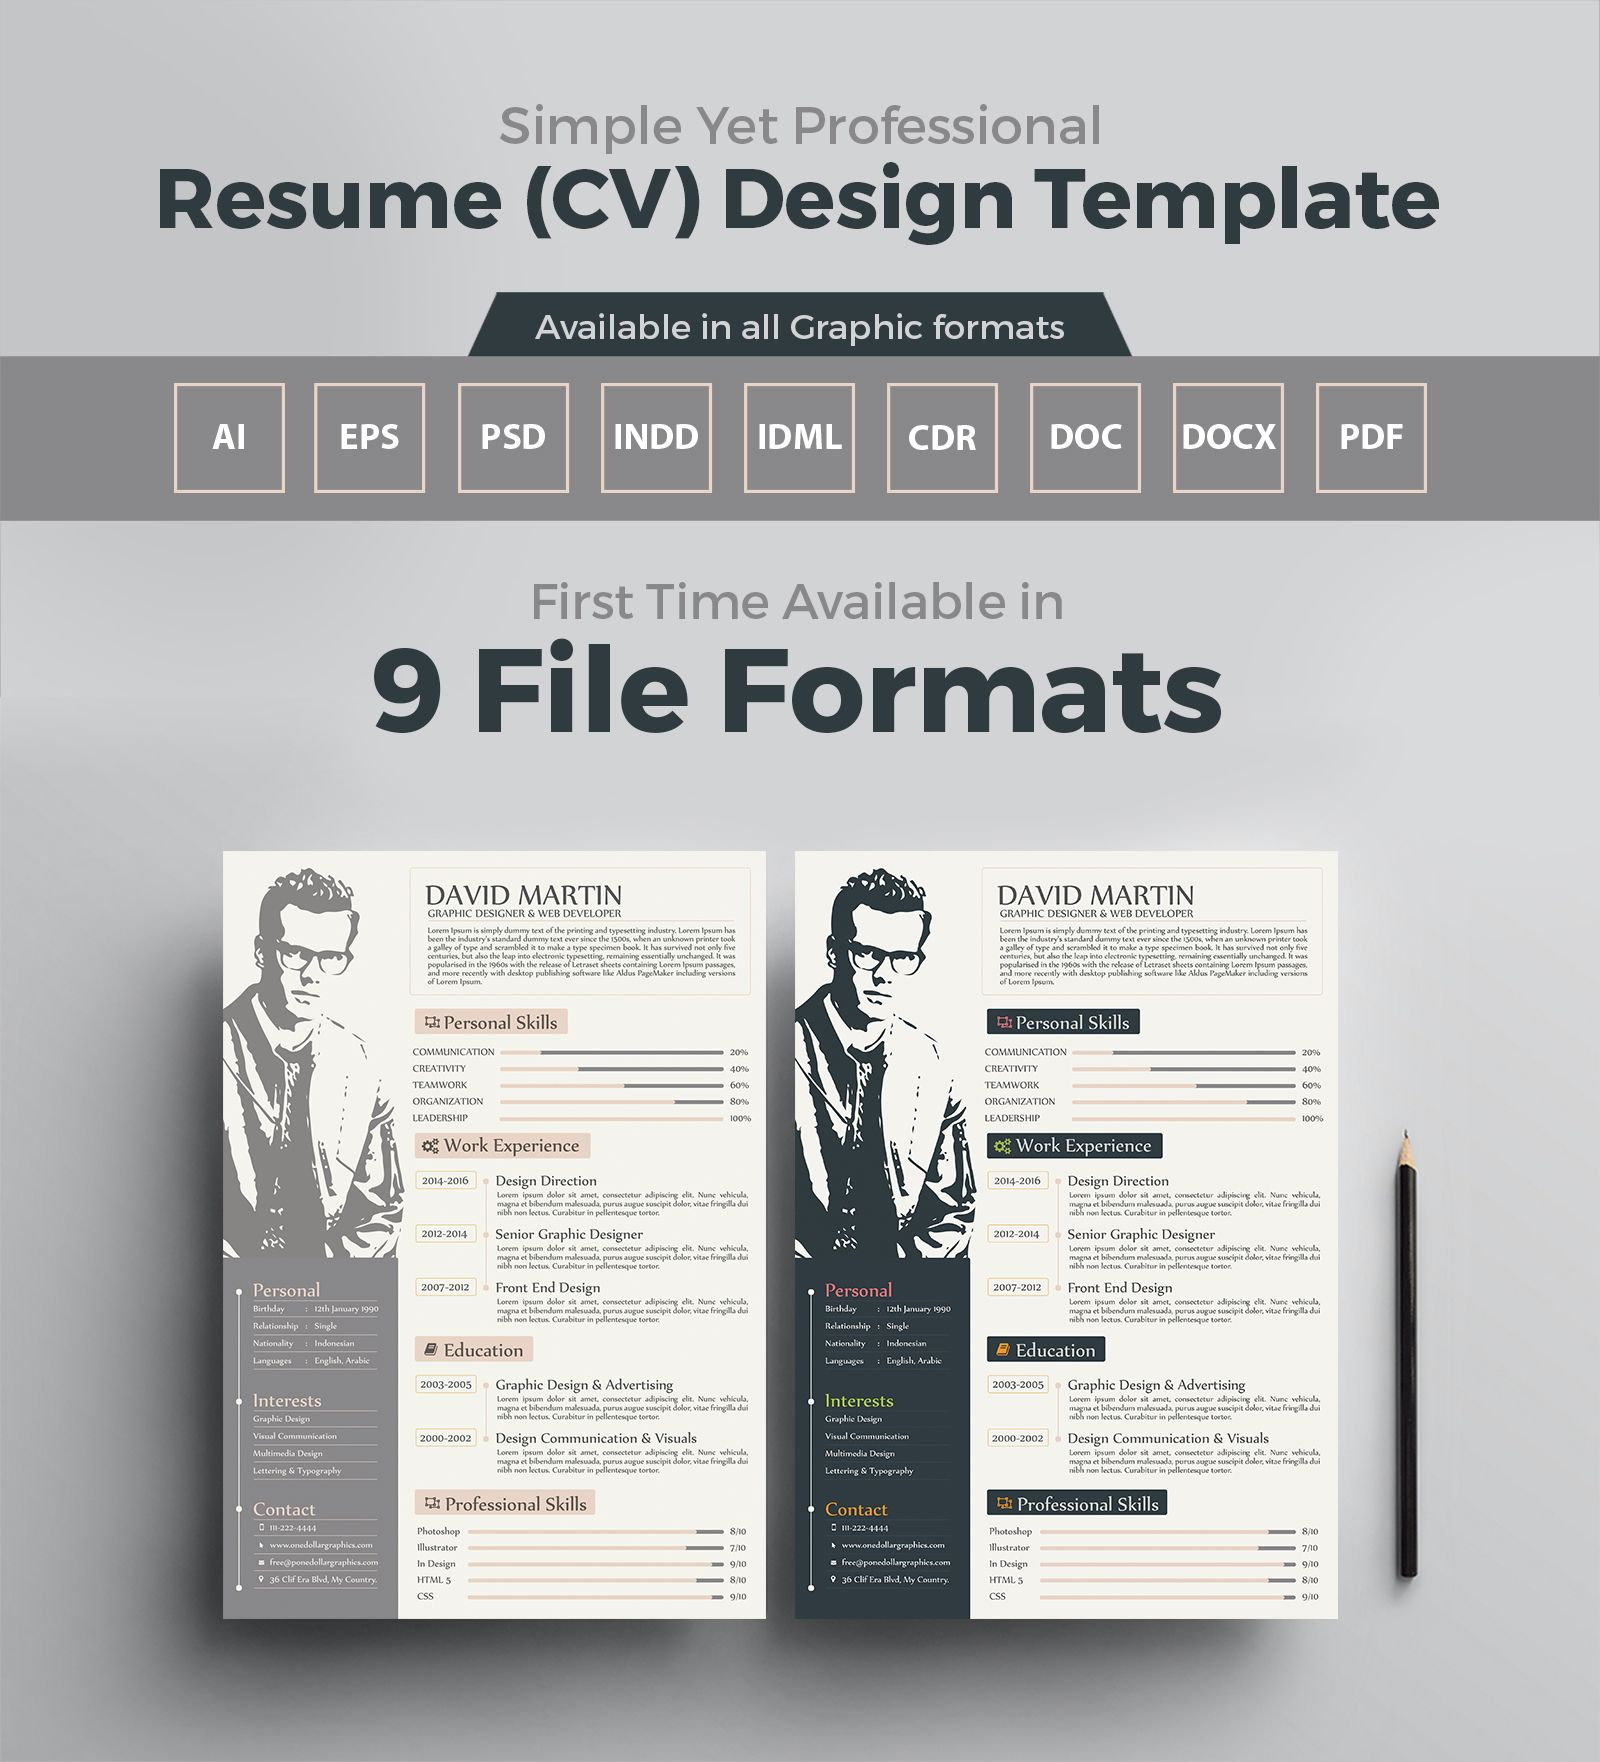 Simple Yet Professional Resume Cv Design Template 3 Graphic Design Resume Resume Design Cv Design Template